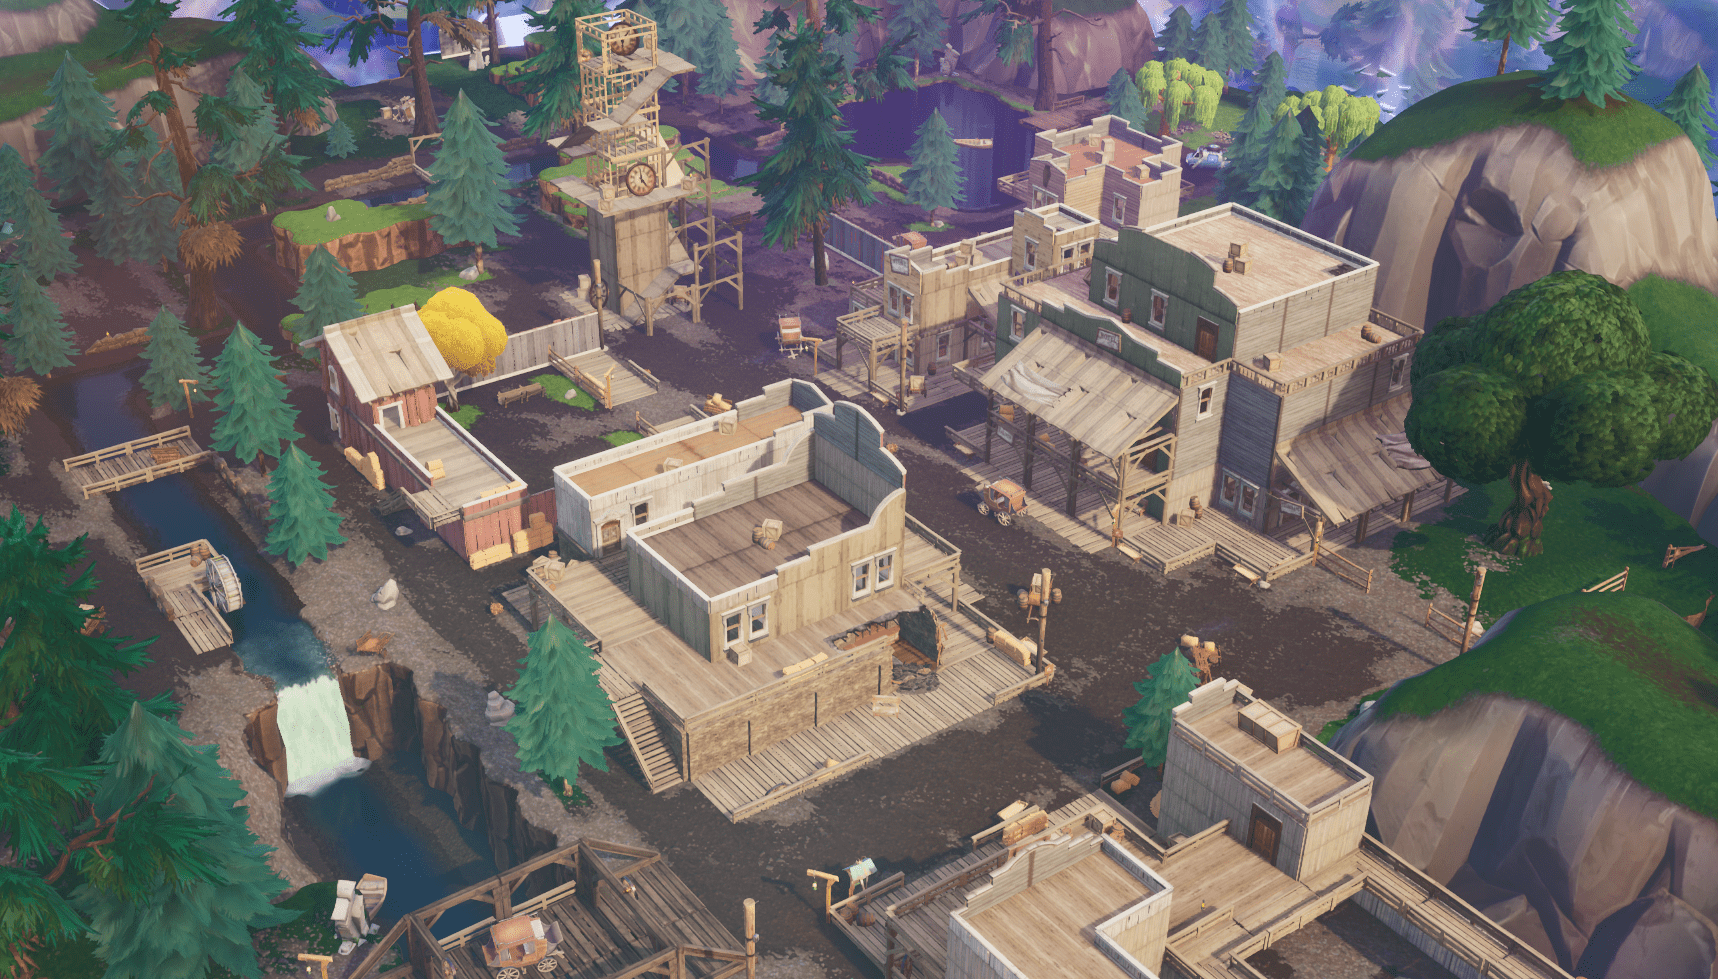 Fortnite v10.00 Content Update Map Changes - Tilted Town